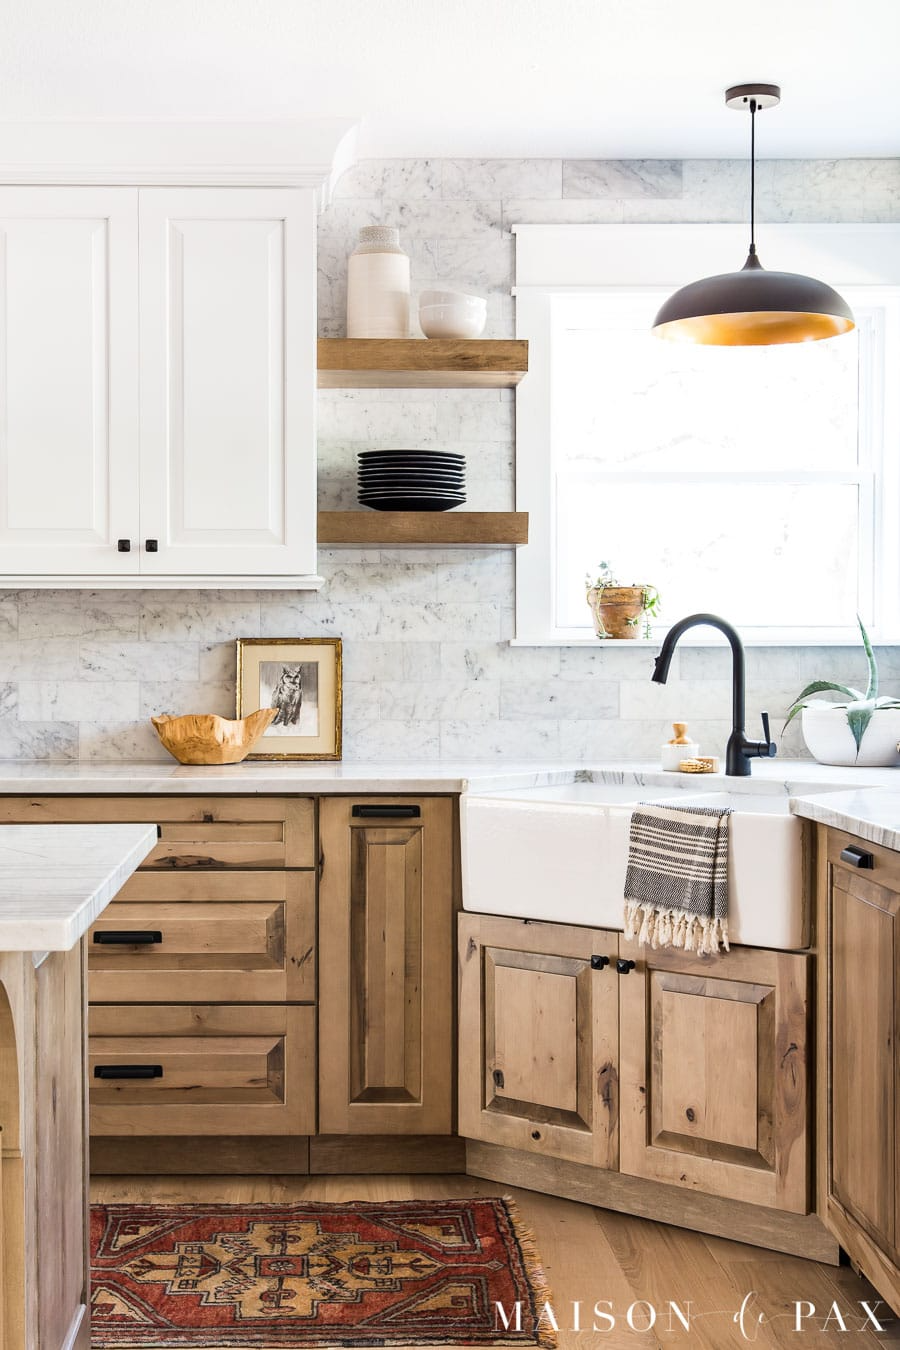 White and Wood Kitchen Reveal: Part 2